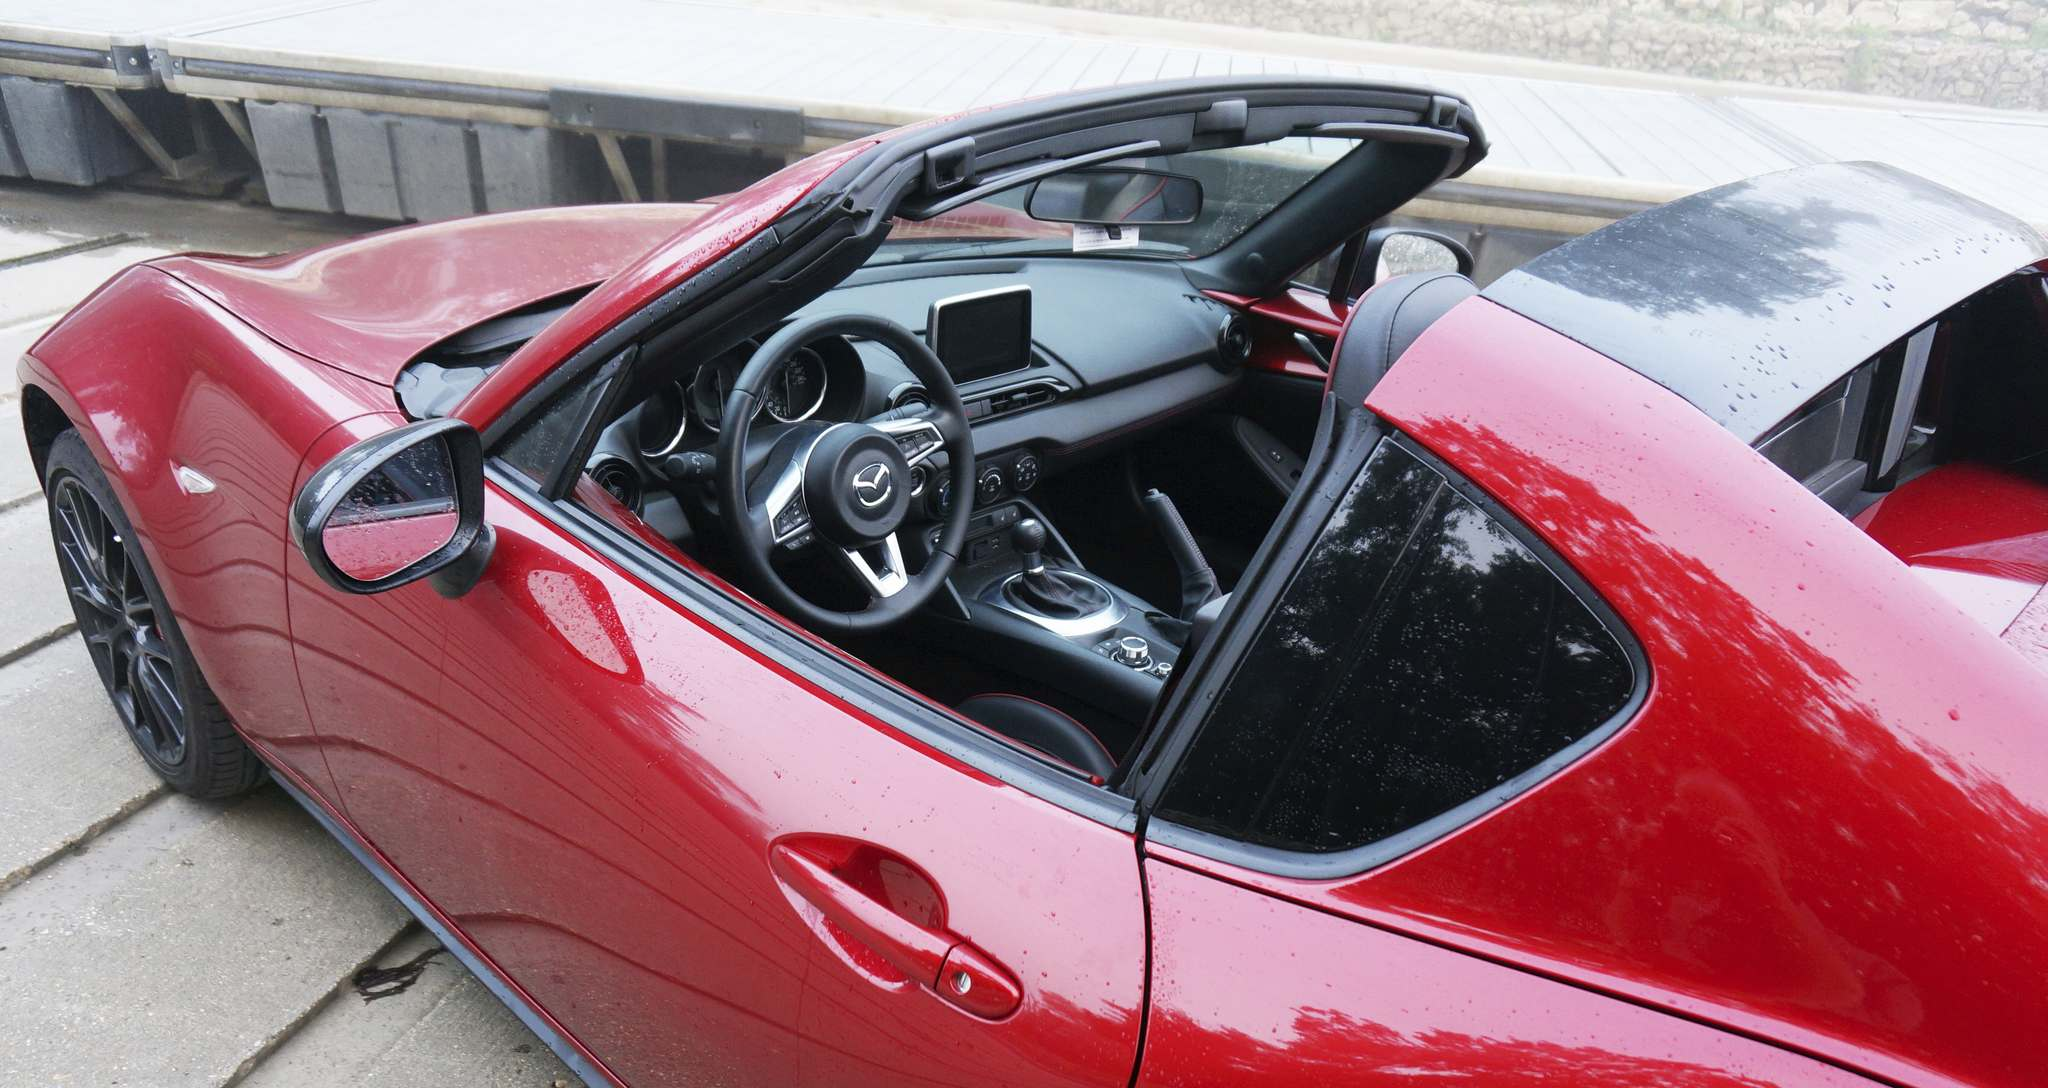 It's all about responsiveness with the MX-5.